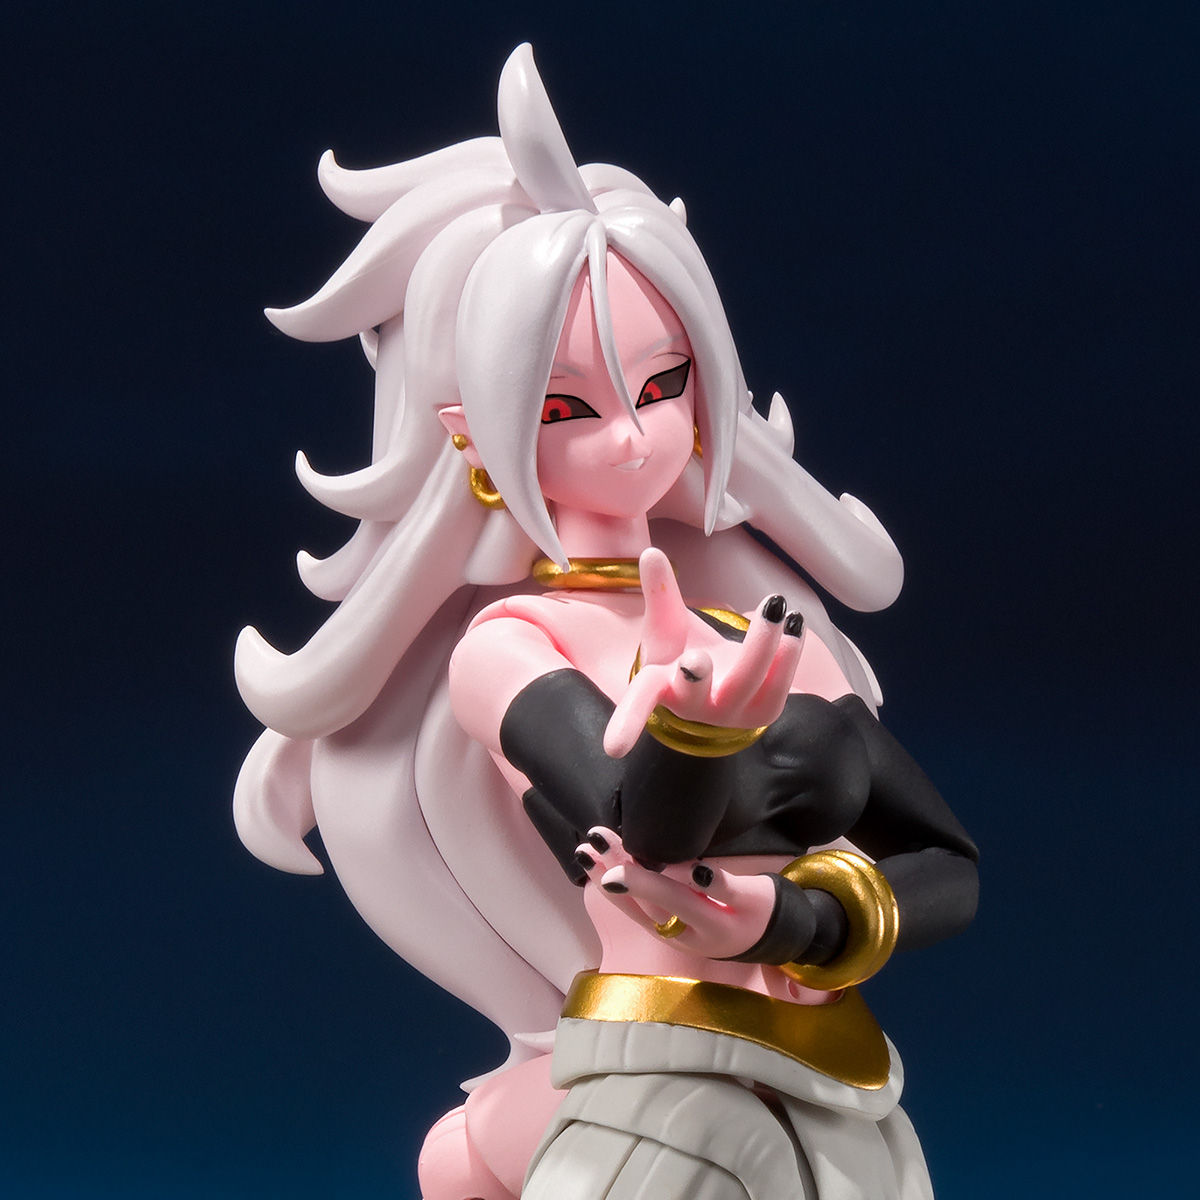 SH Figuarts Android 21 From Dragon Ball FighterZ